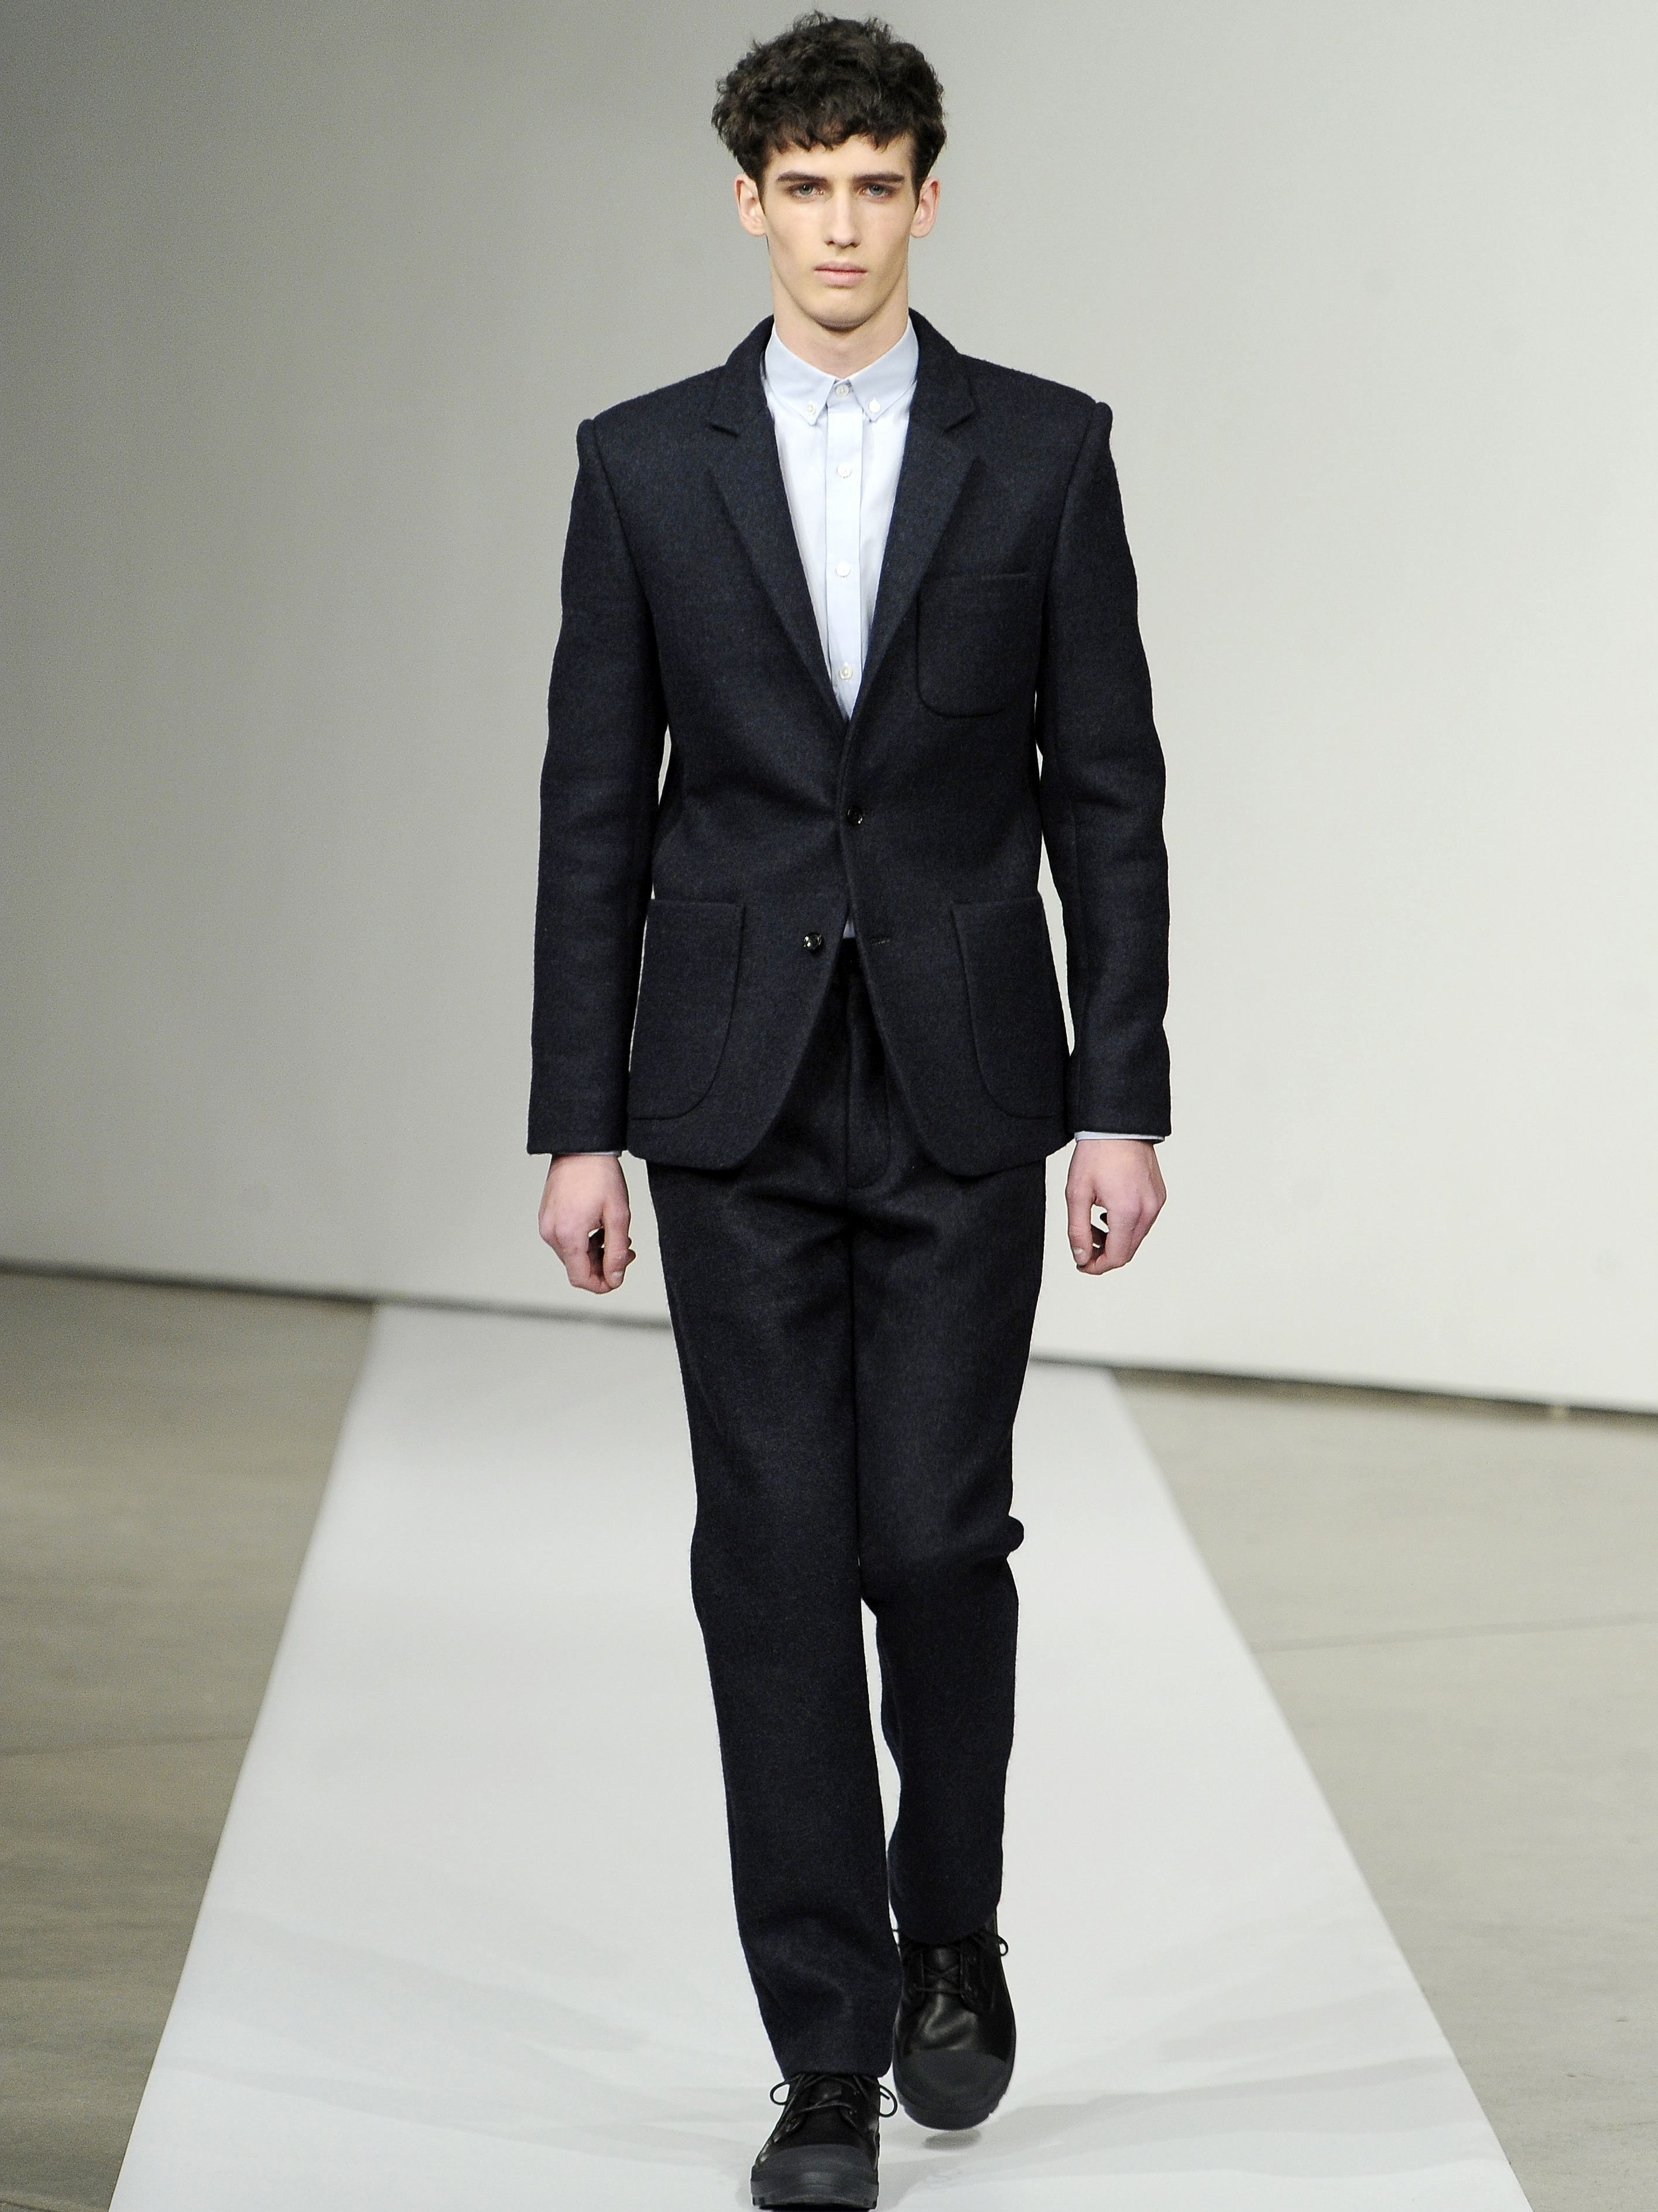 The Patrik Ervell Fall 2012 Collection Showed Suits Without Ties For New York Fashion Week Image Ap